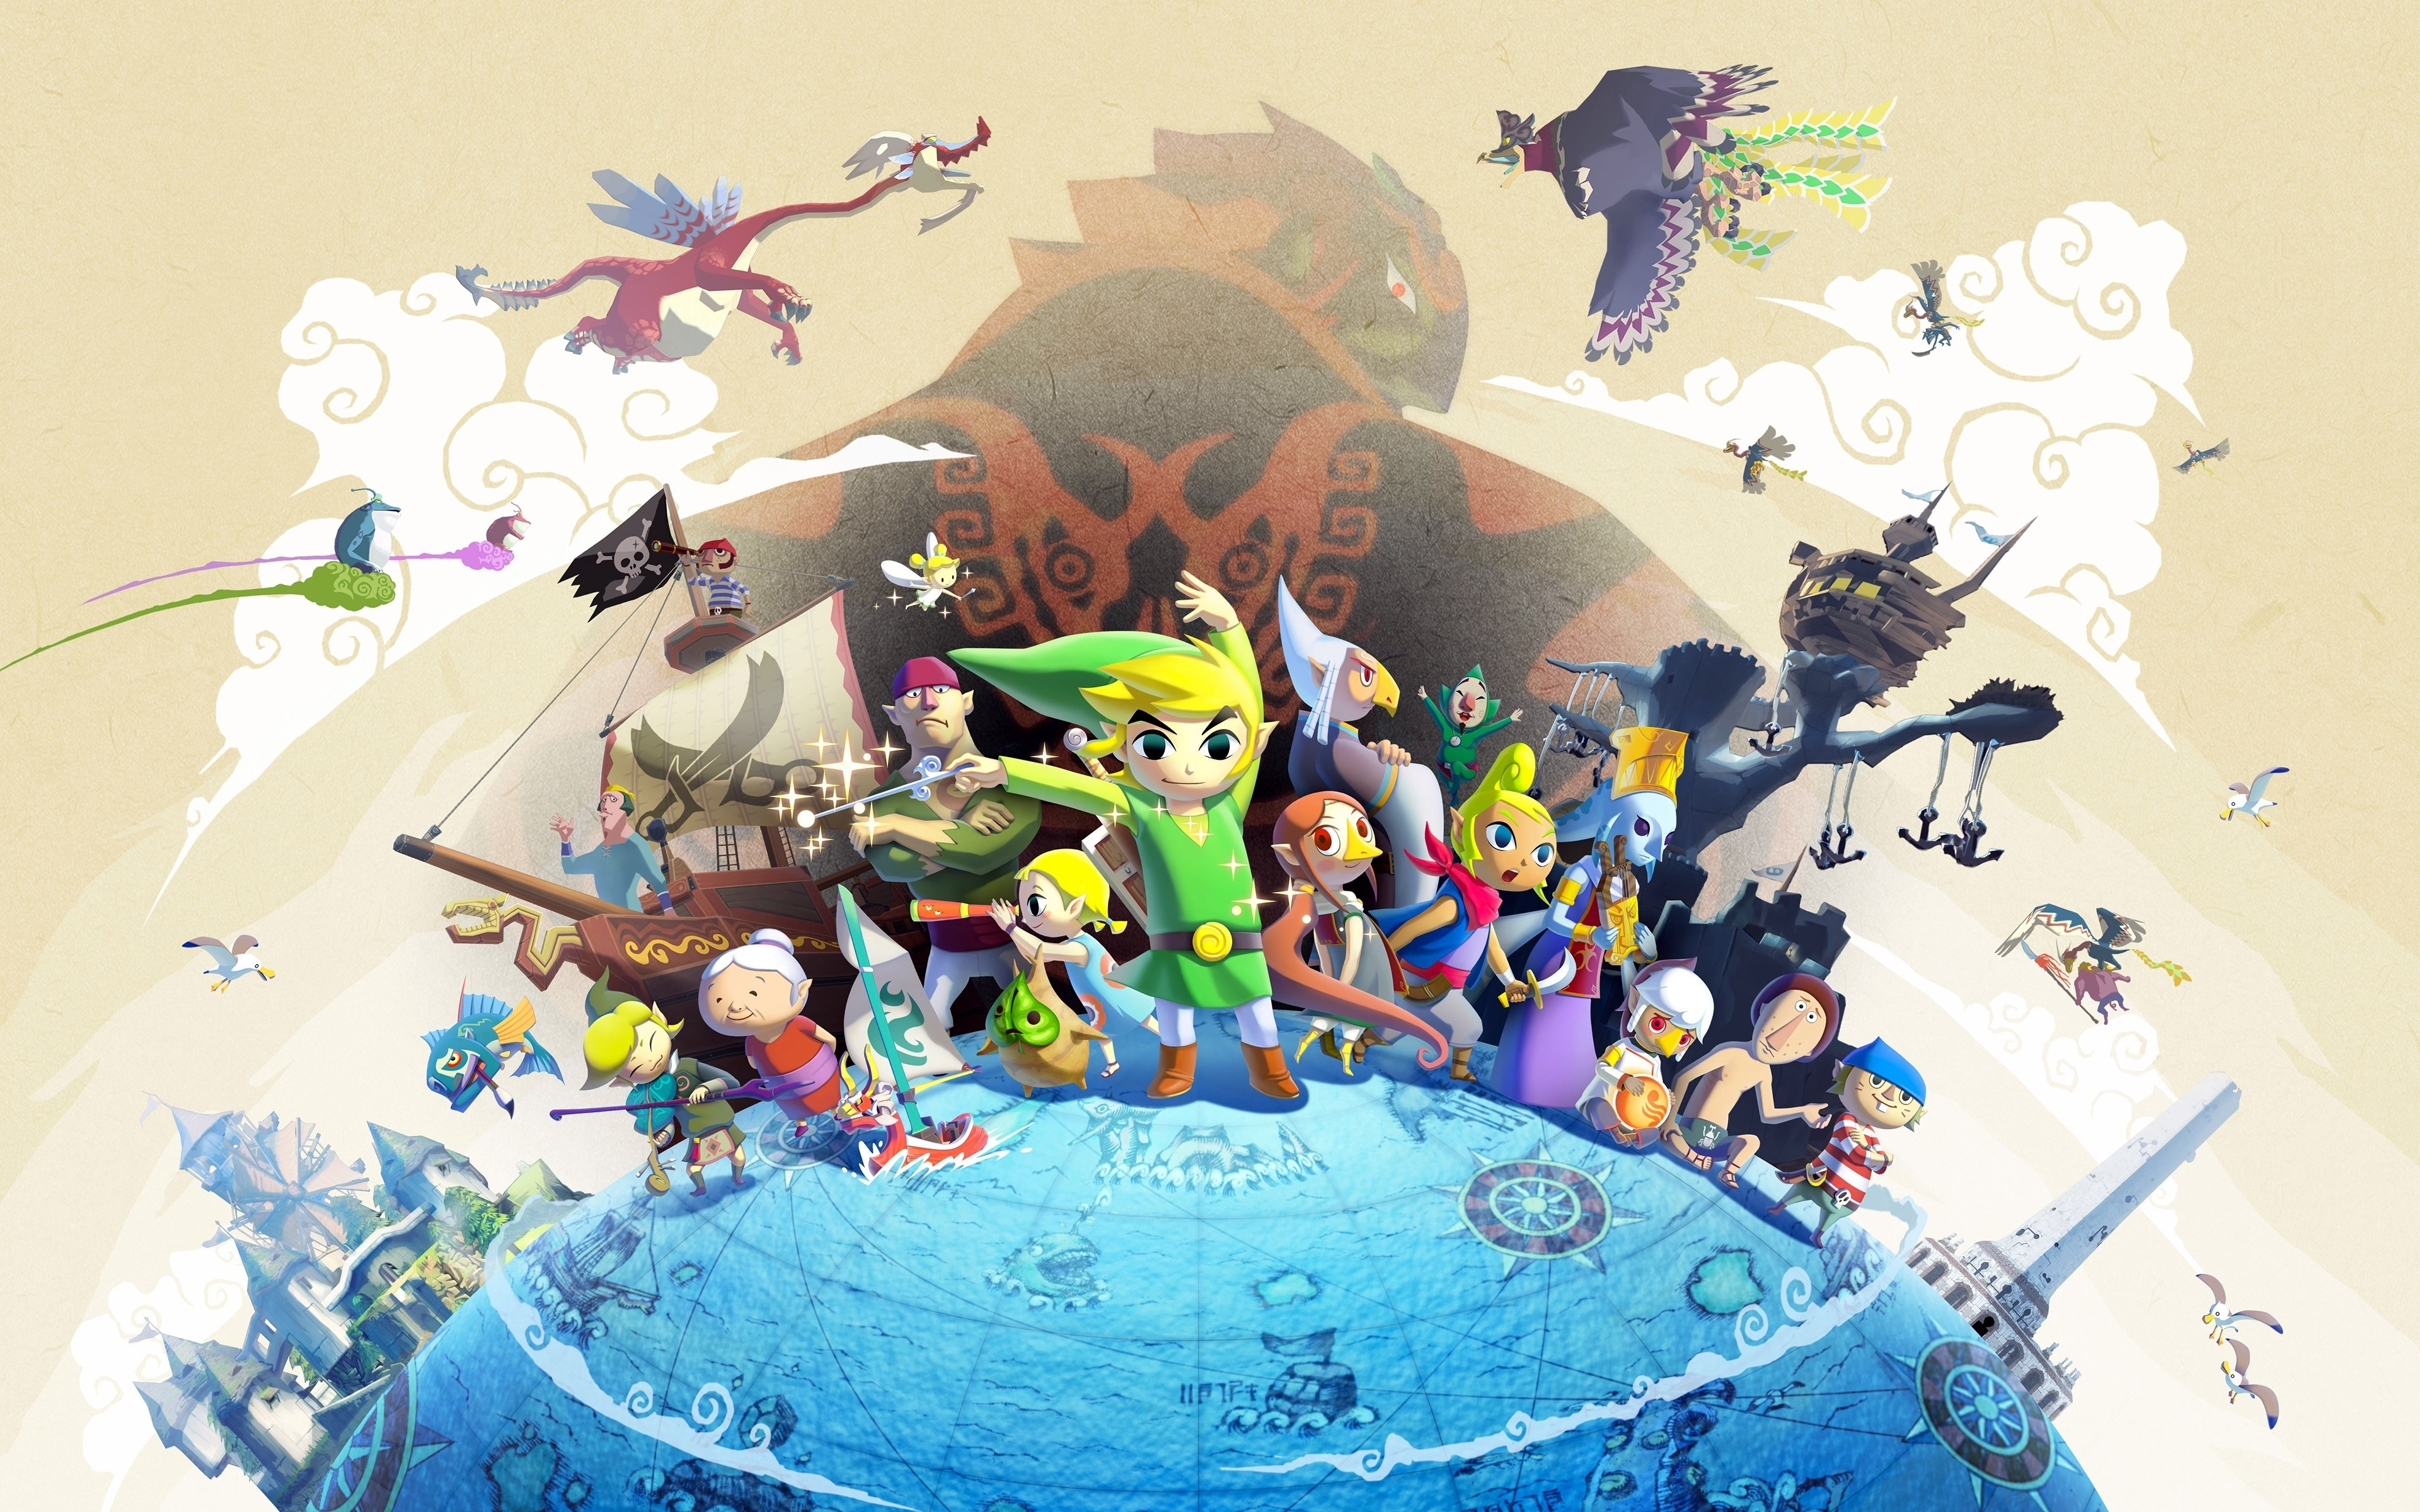 the legend of zelda: wind waker, video games, link, windwaker